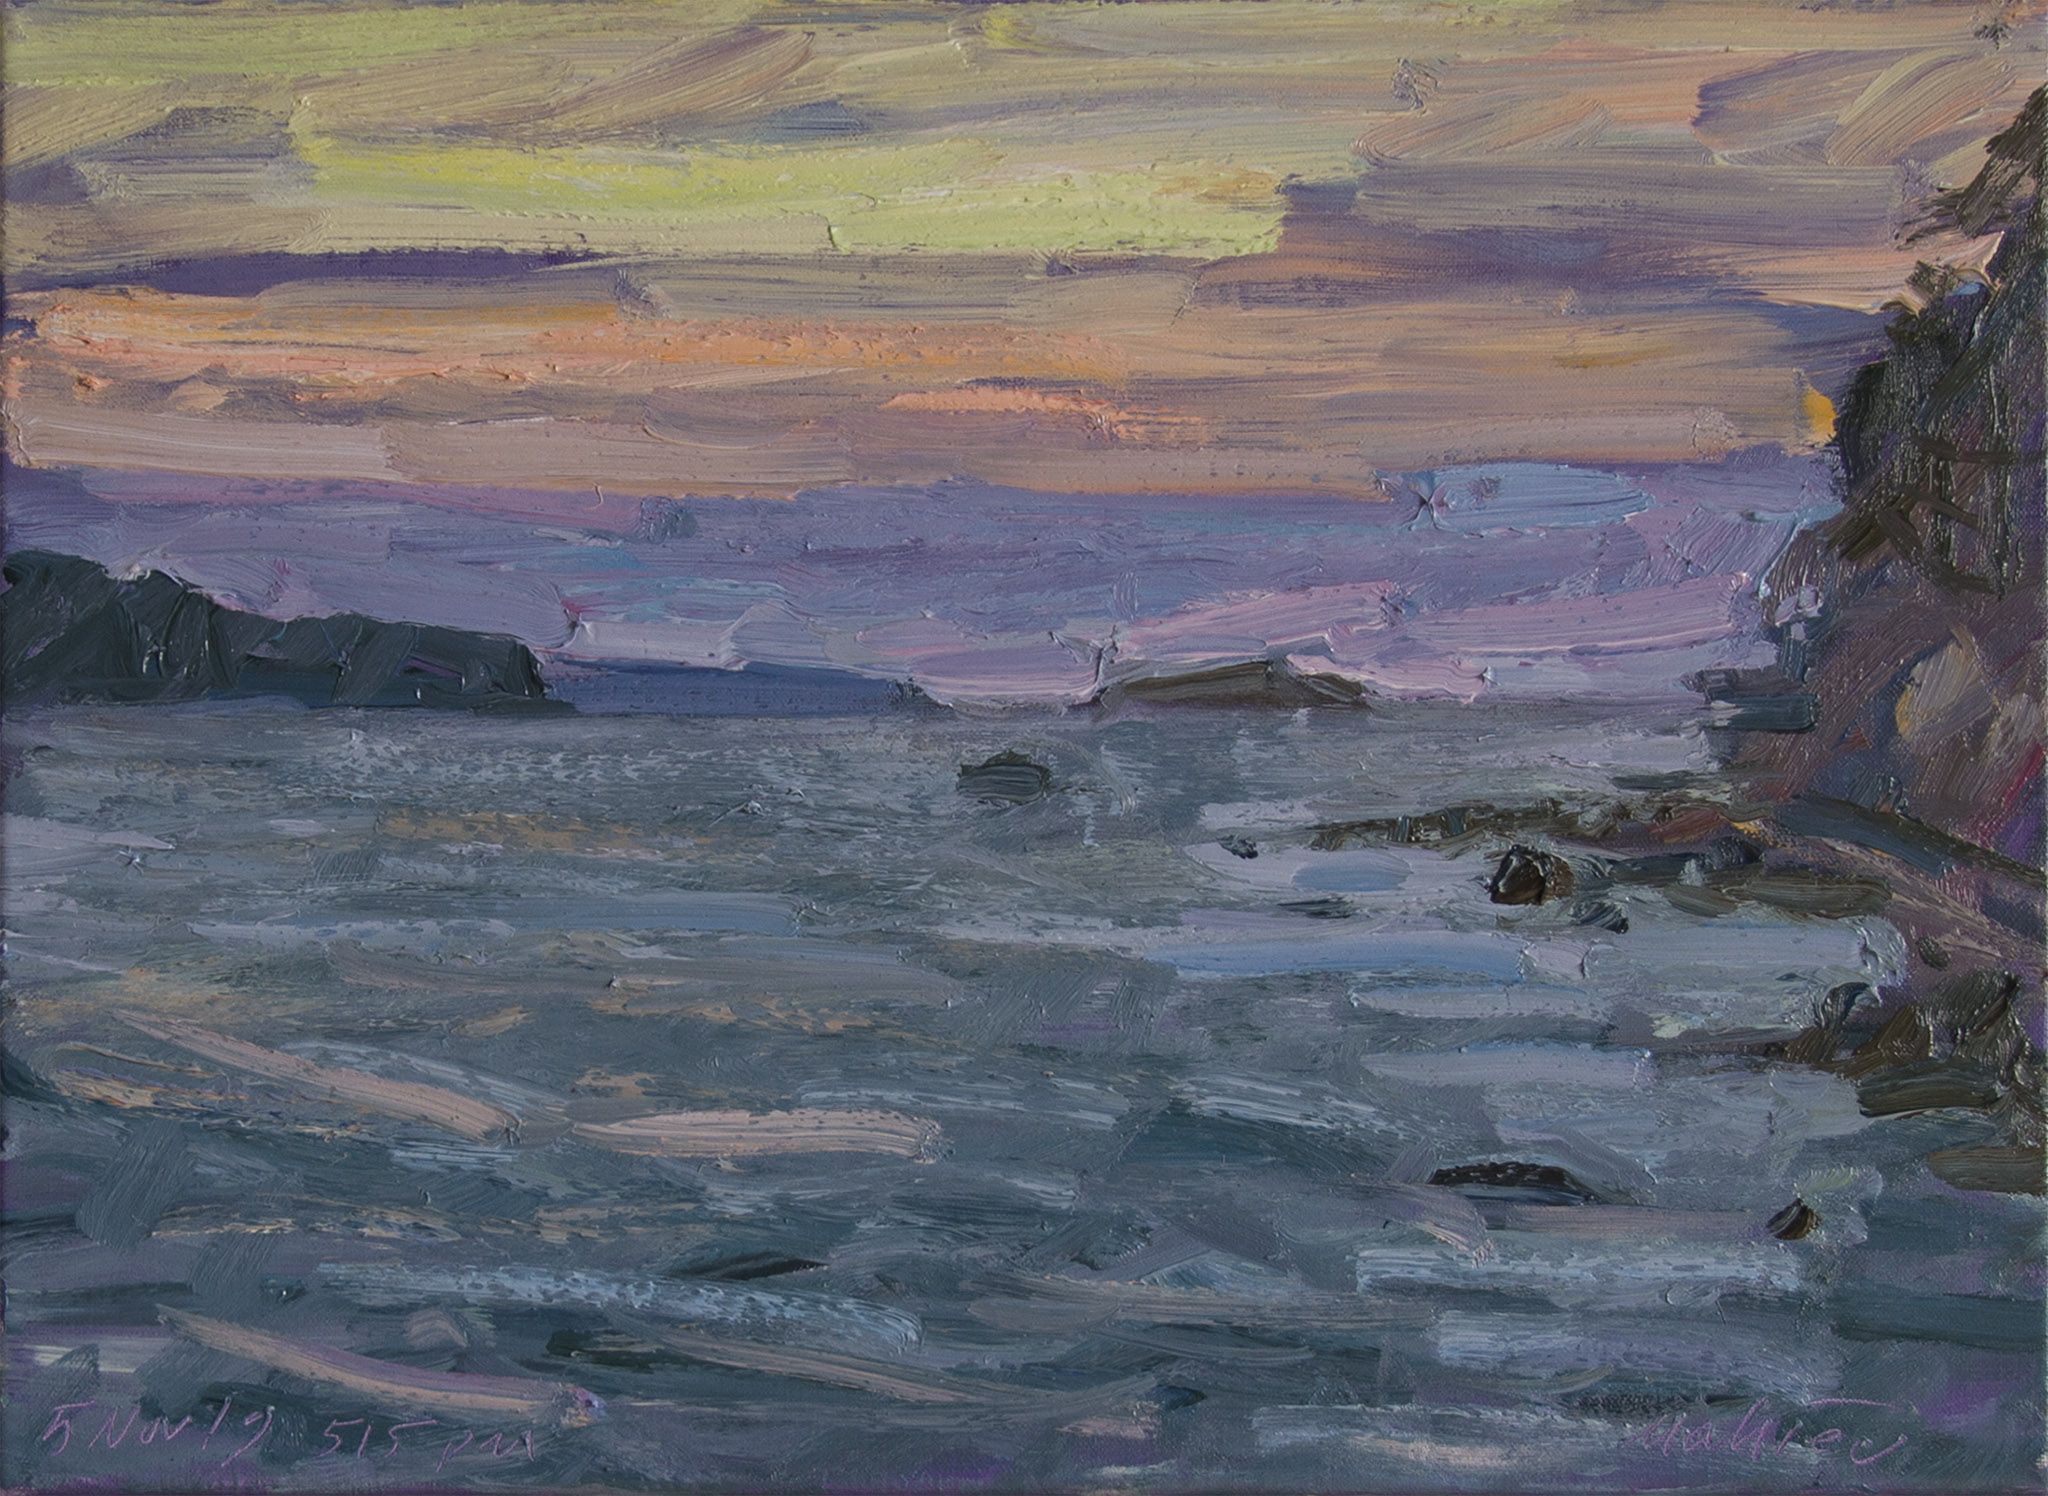 November Sunset in Shades of Violet and Coral